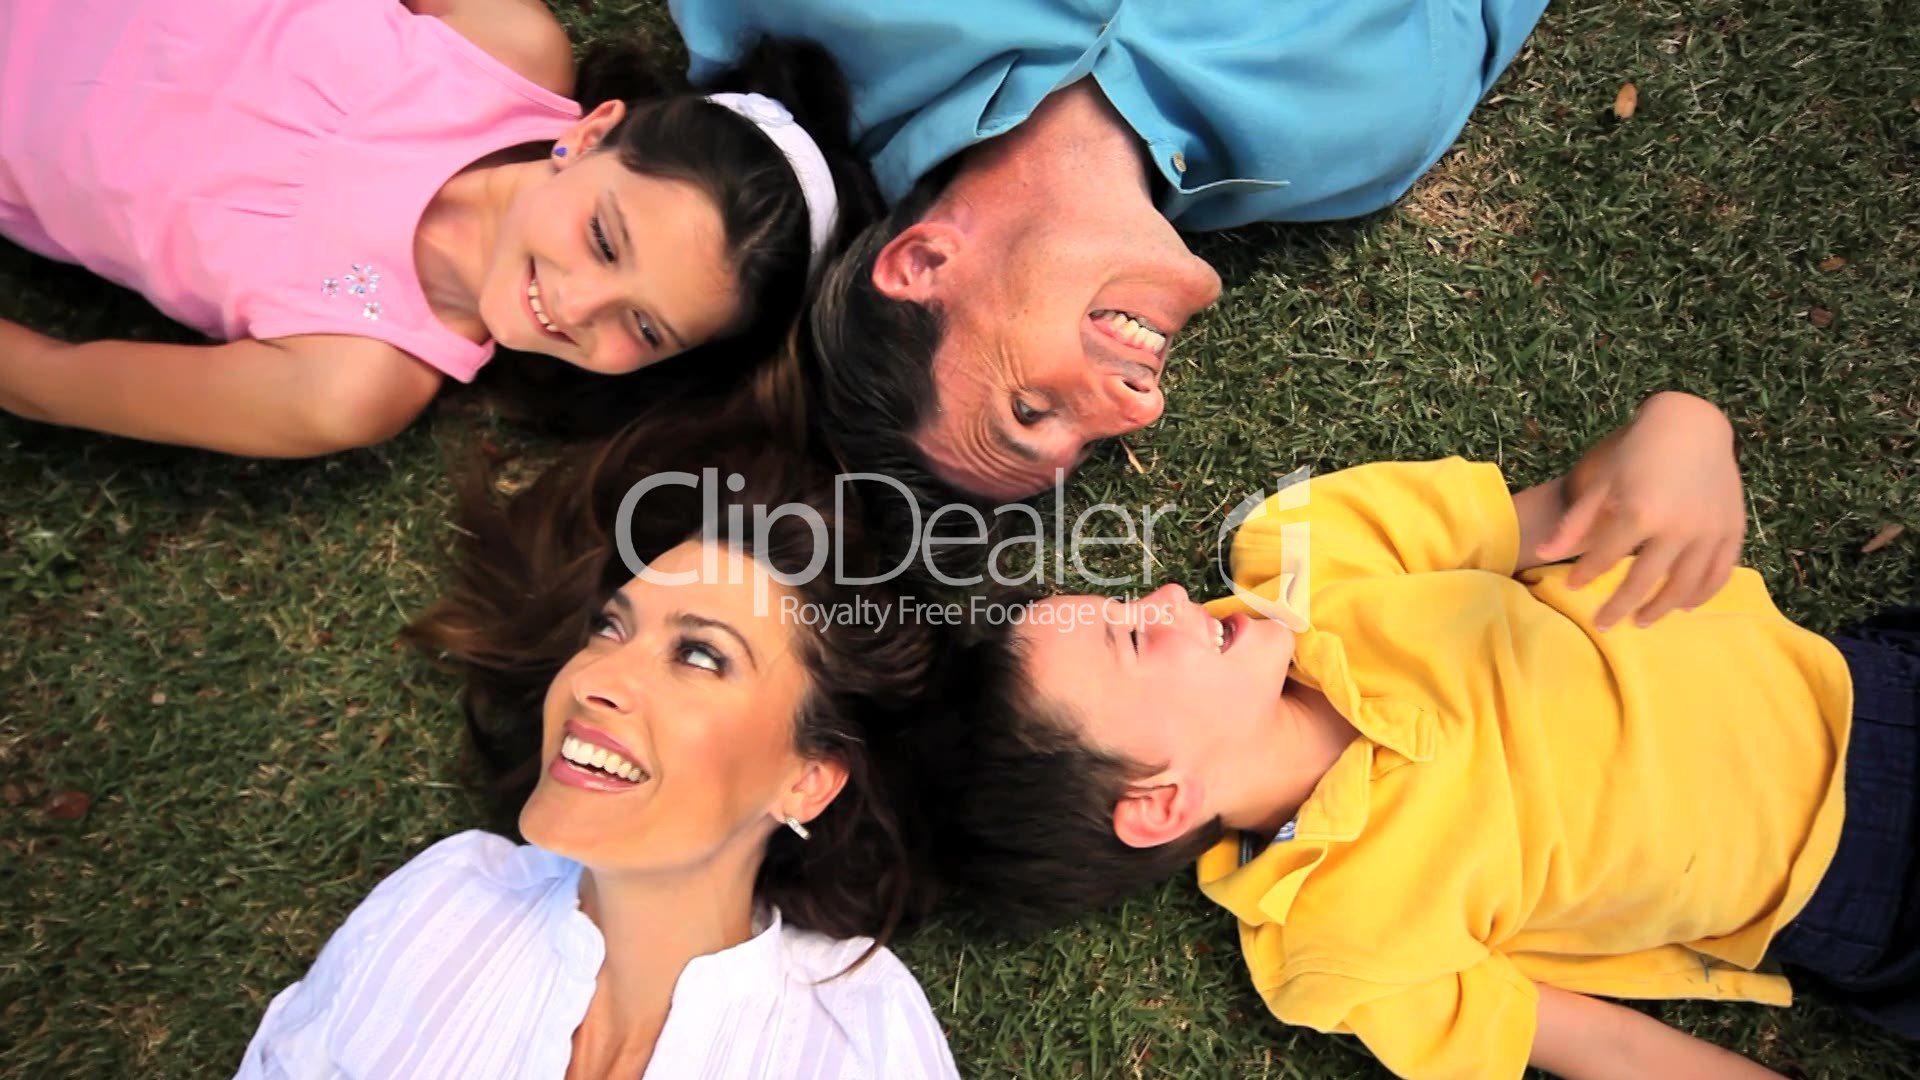 Moderne Familie Royalty Free Video And Stock Footage